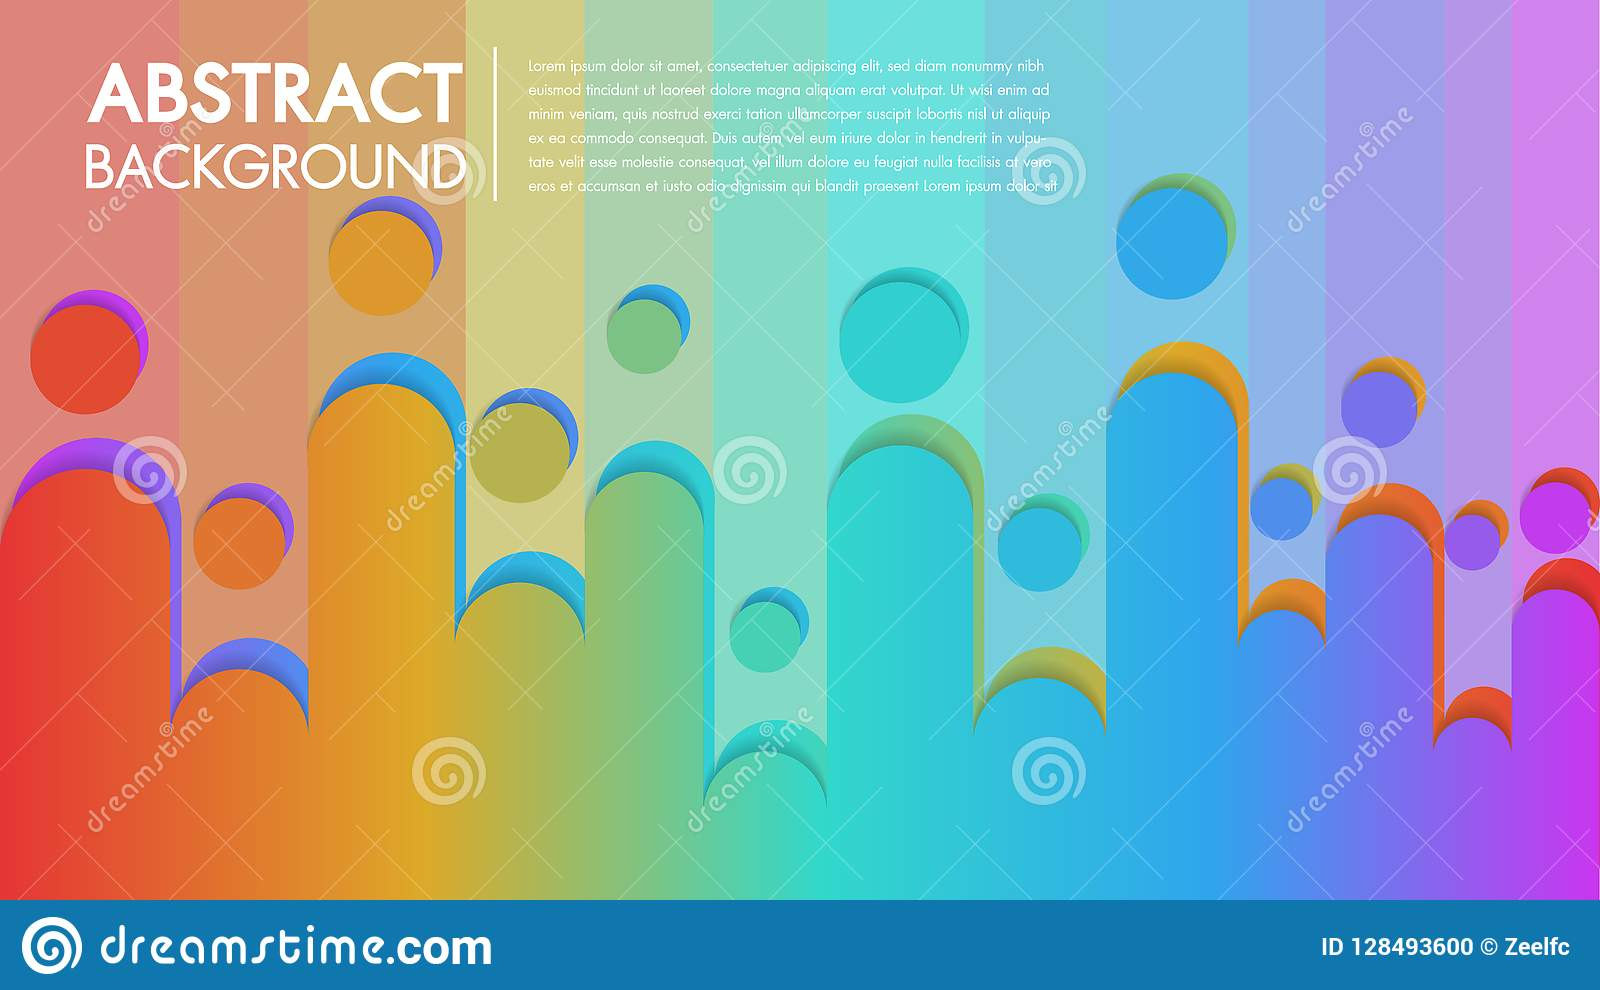 Cool Background Colorful Abstract Poster With Flat Geometric